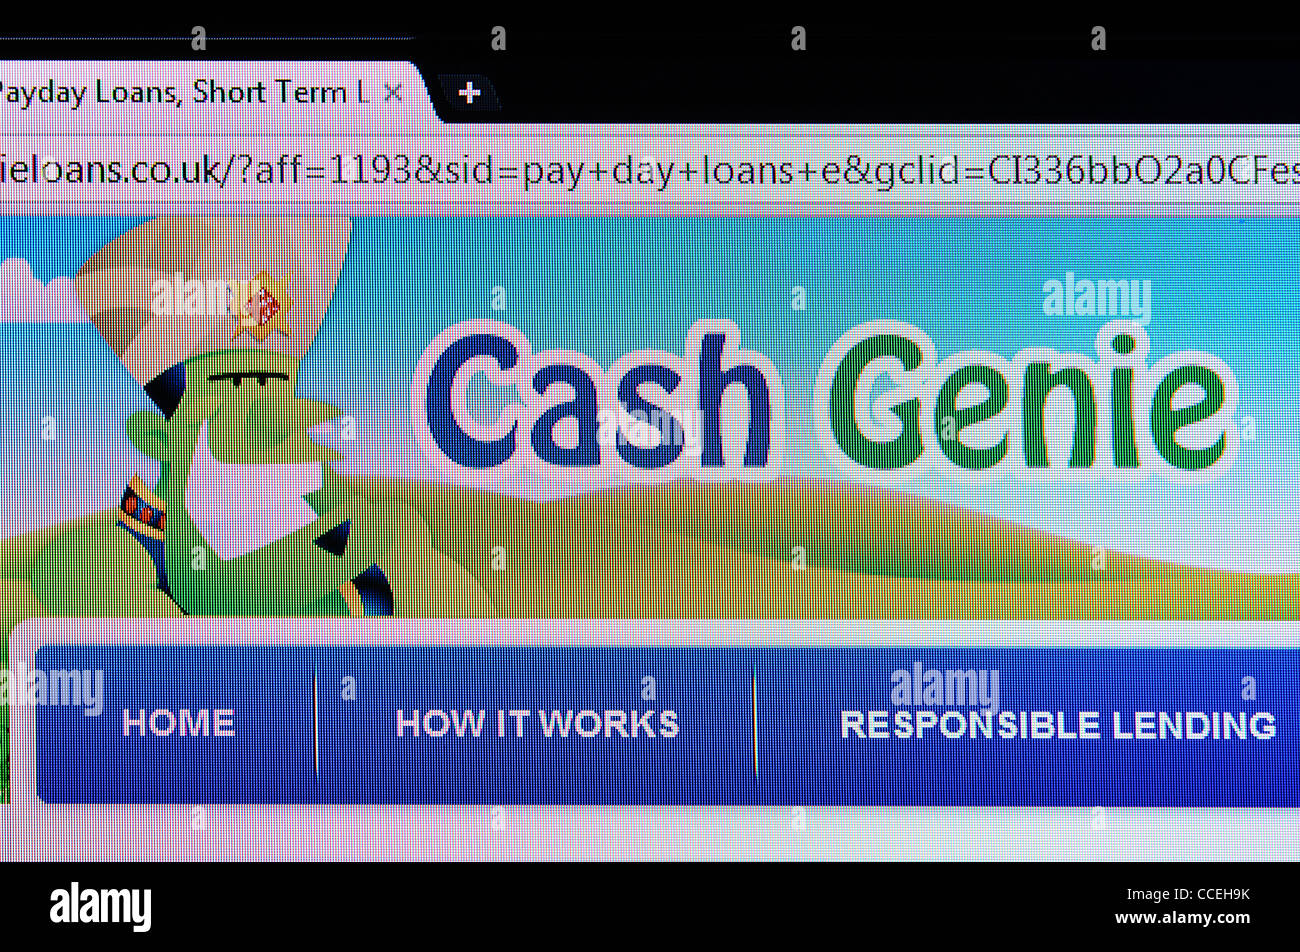 Payday loan online now image 4